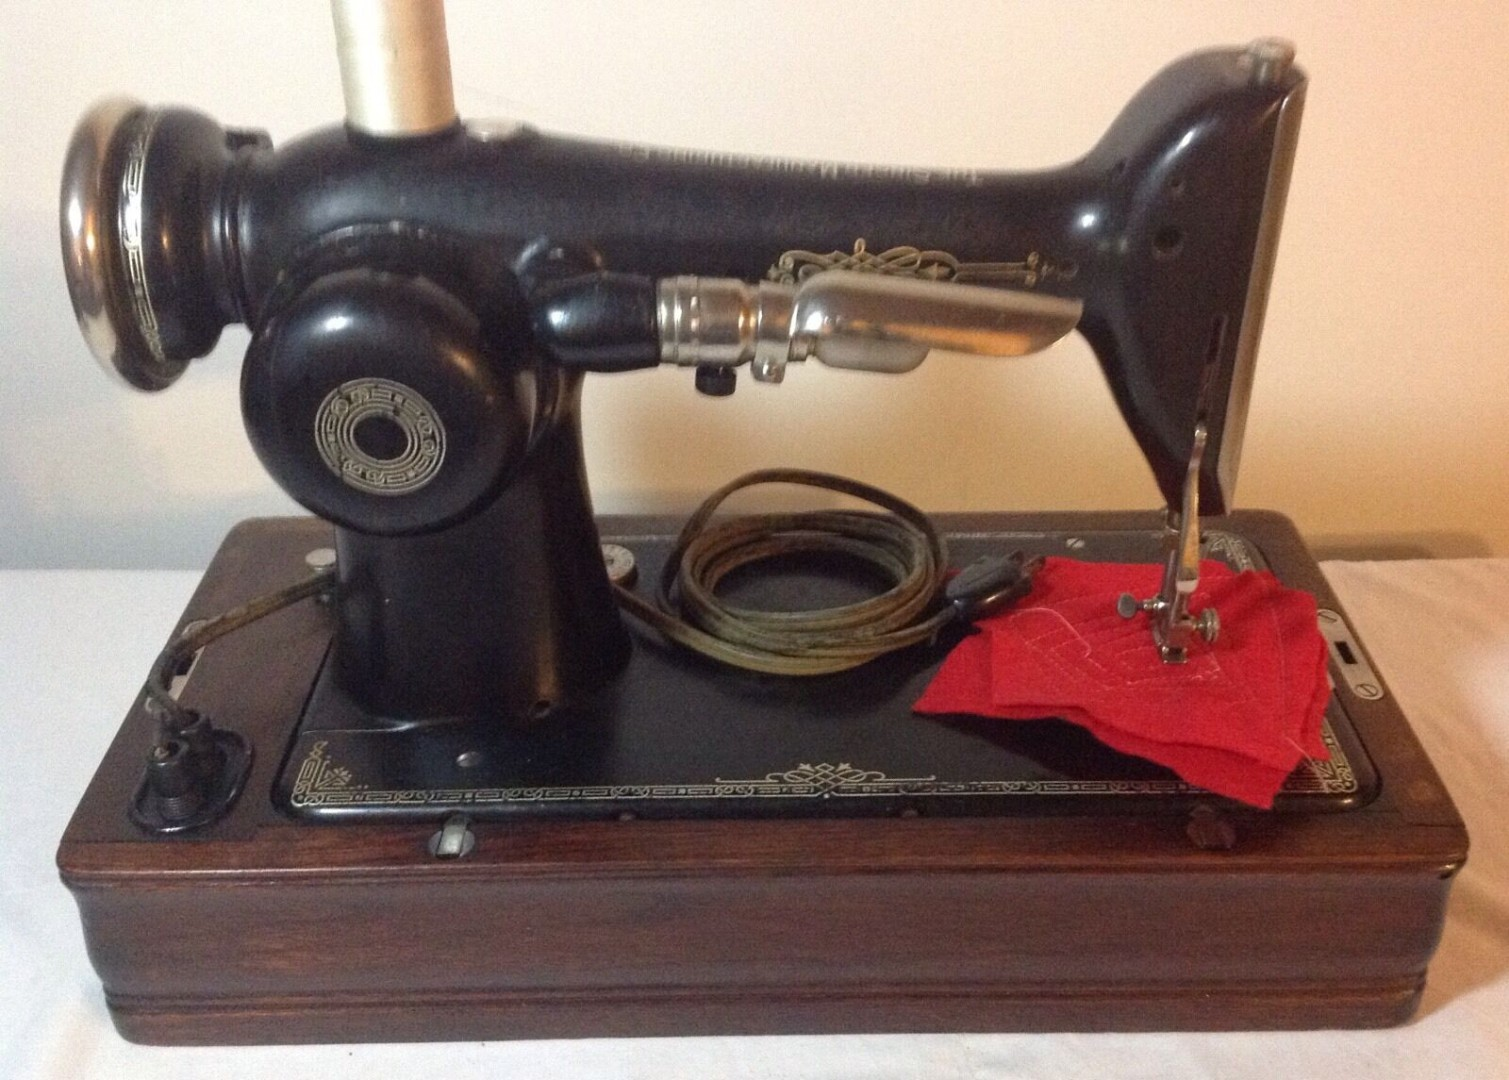 Vintage-Working-Singer-101-4-portable-sewing-machine-with-_57.jpg